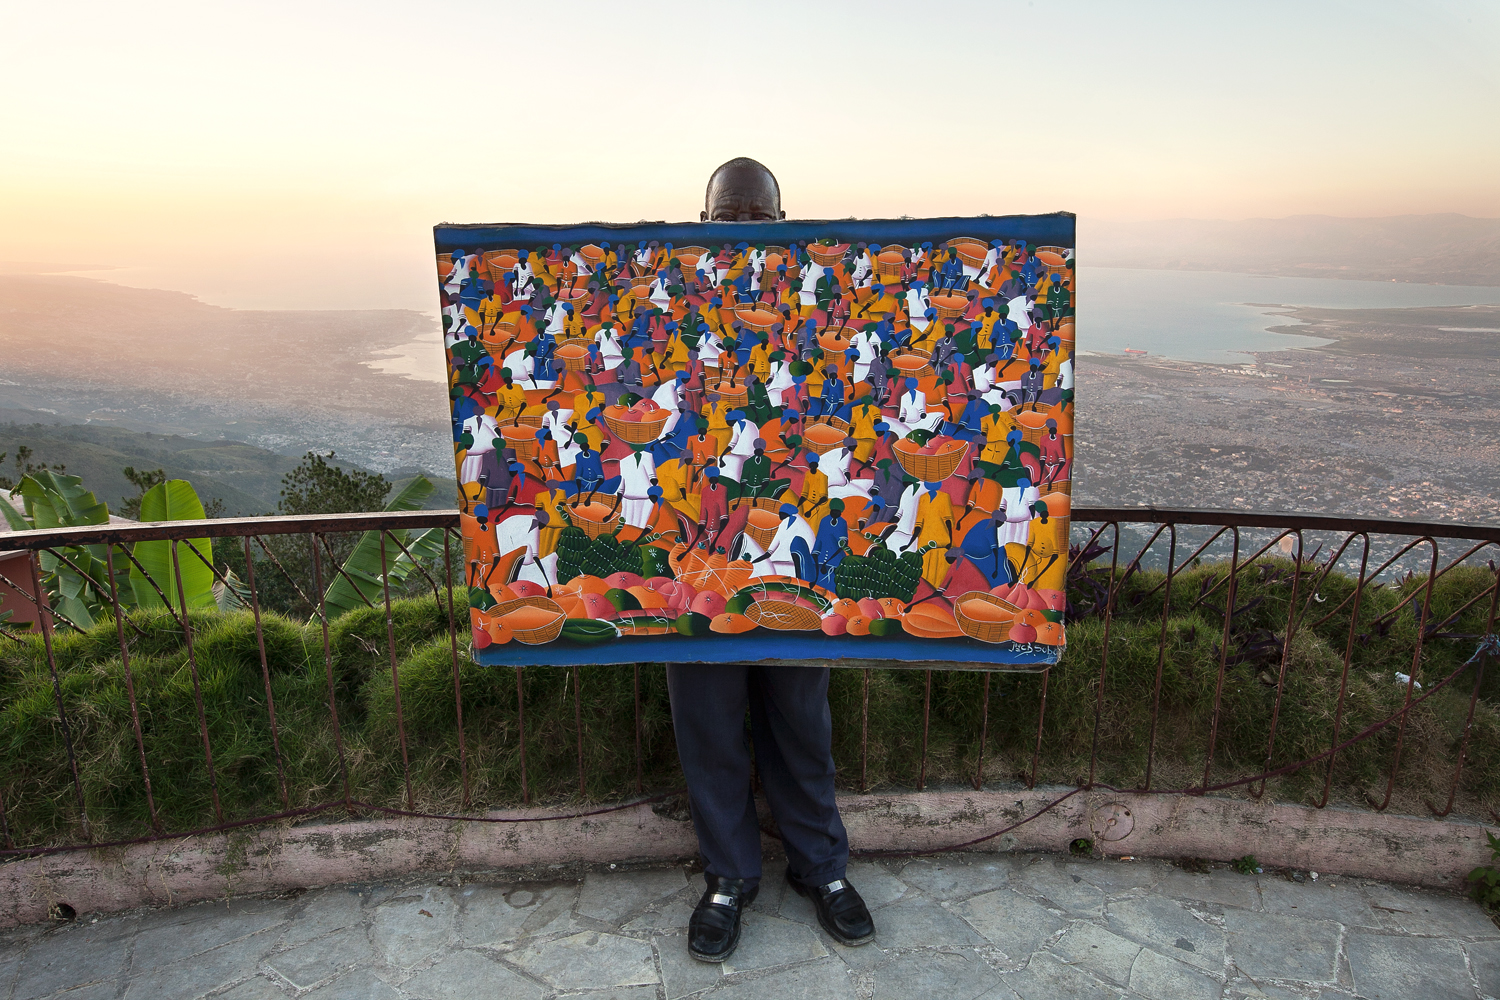 A local artist proudly holds his latest masterpiece depicting a traditional scene from the Haitian culture. He sells his work at a popular road-side lookout known for its view of Port-au-Prince.